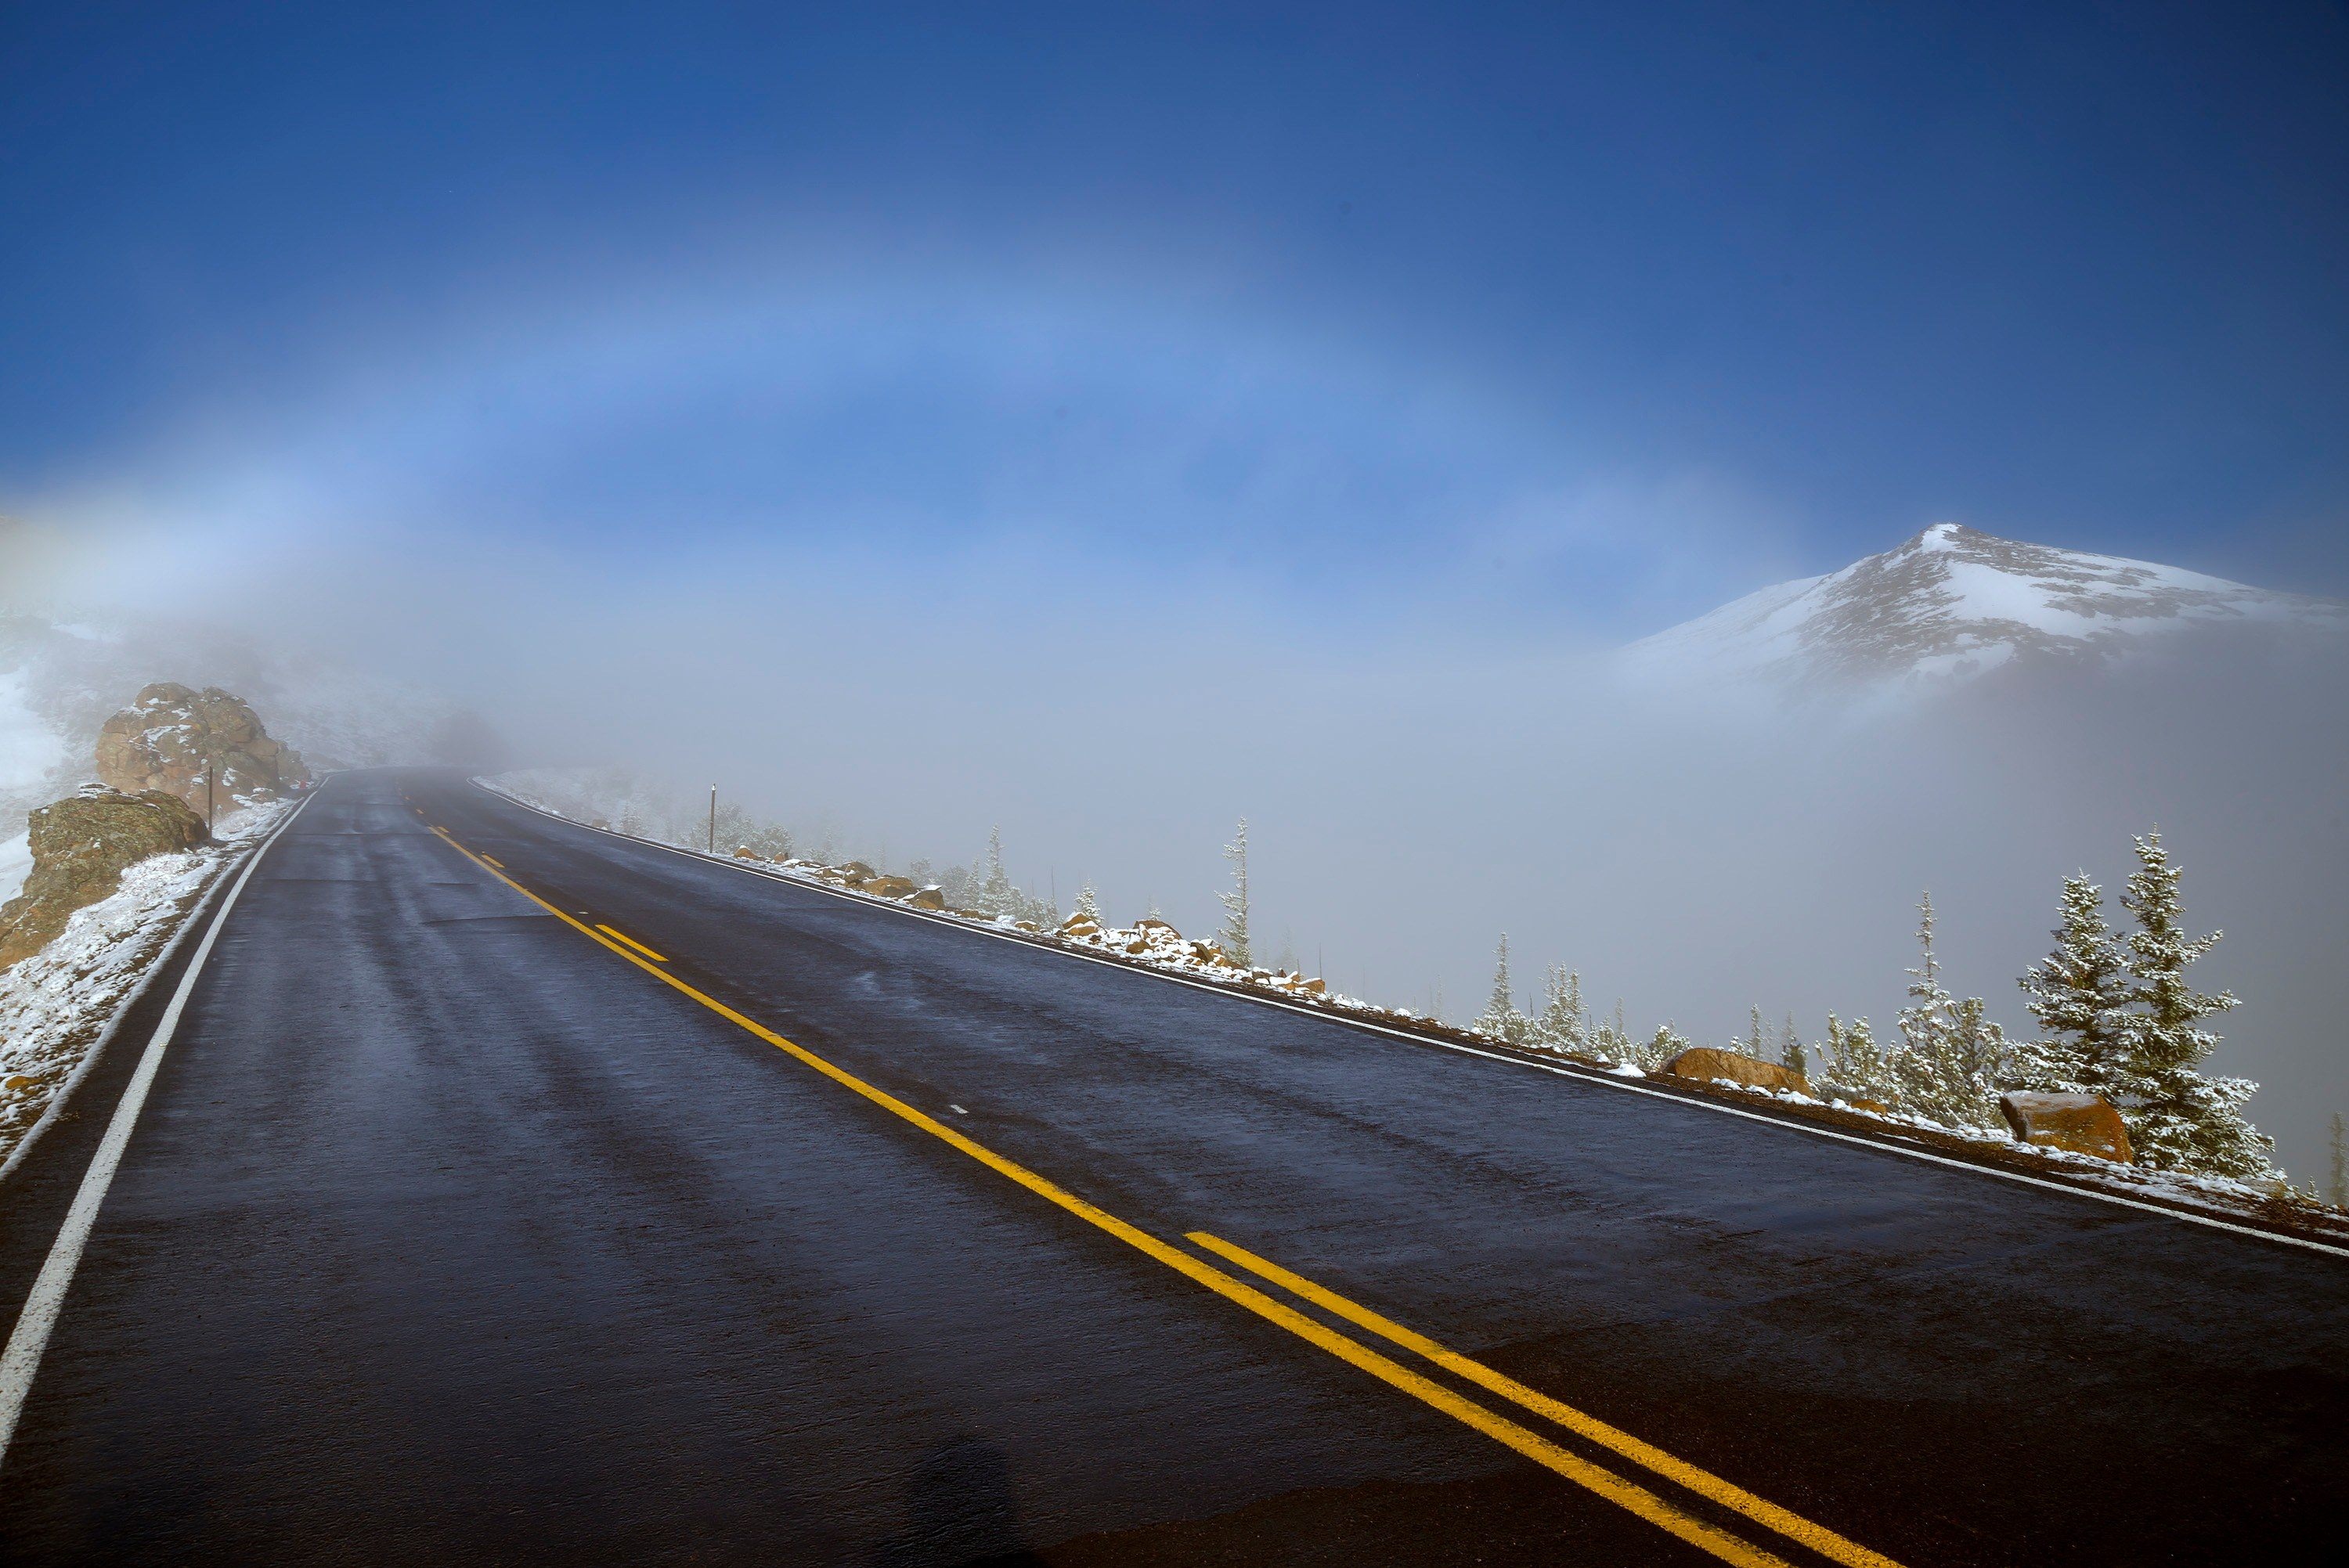 <div class='title'>           Gateway to the Mountains         </div>                 <div class='description'>           As I began to rise above the clouds, the sunlight shining through the dissipating clouds forms a cloud bow arcing over Trail Ridge Road as it rises above the trees.         </div>